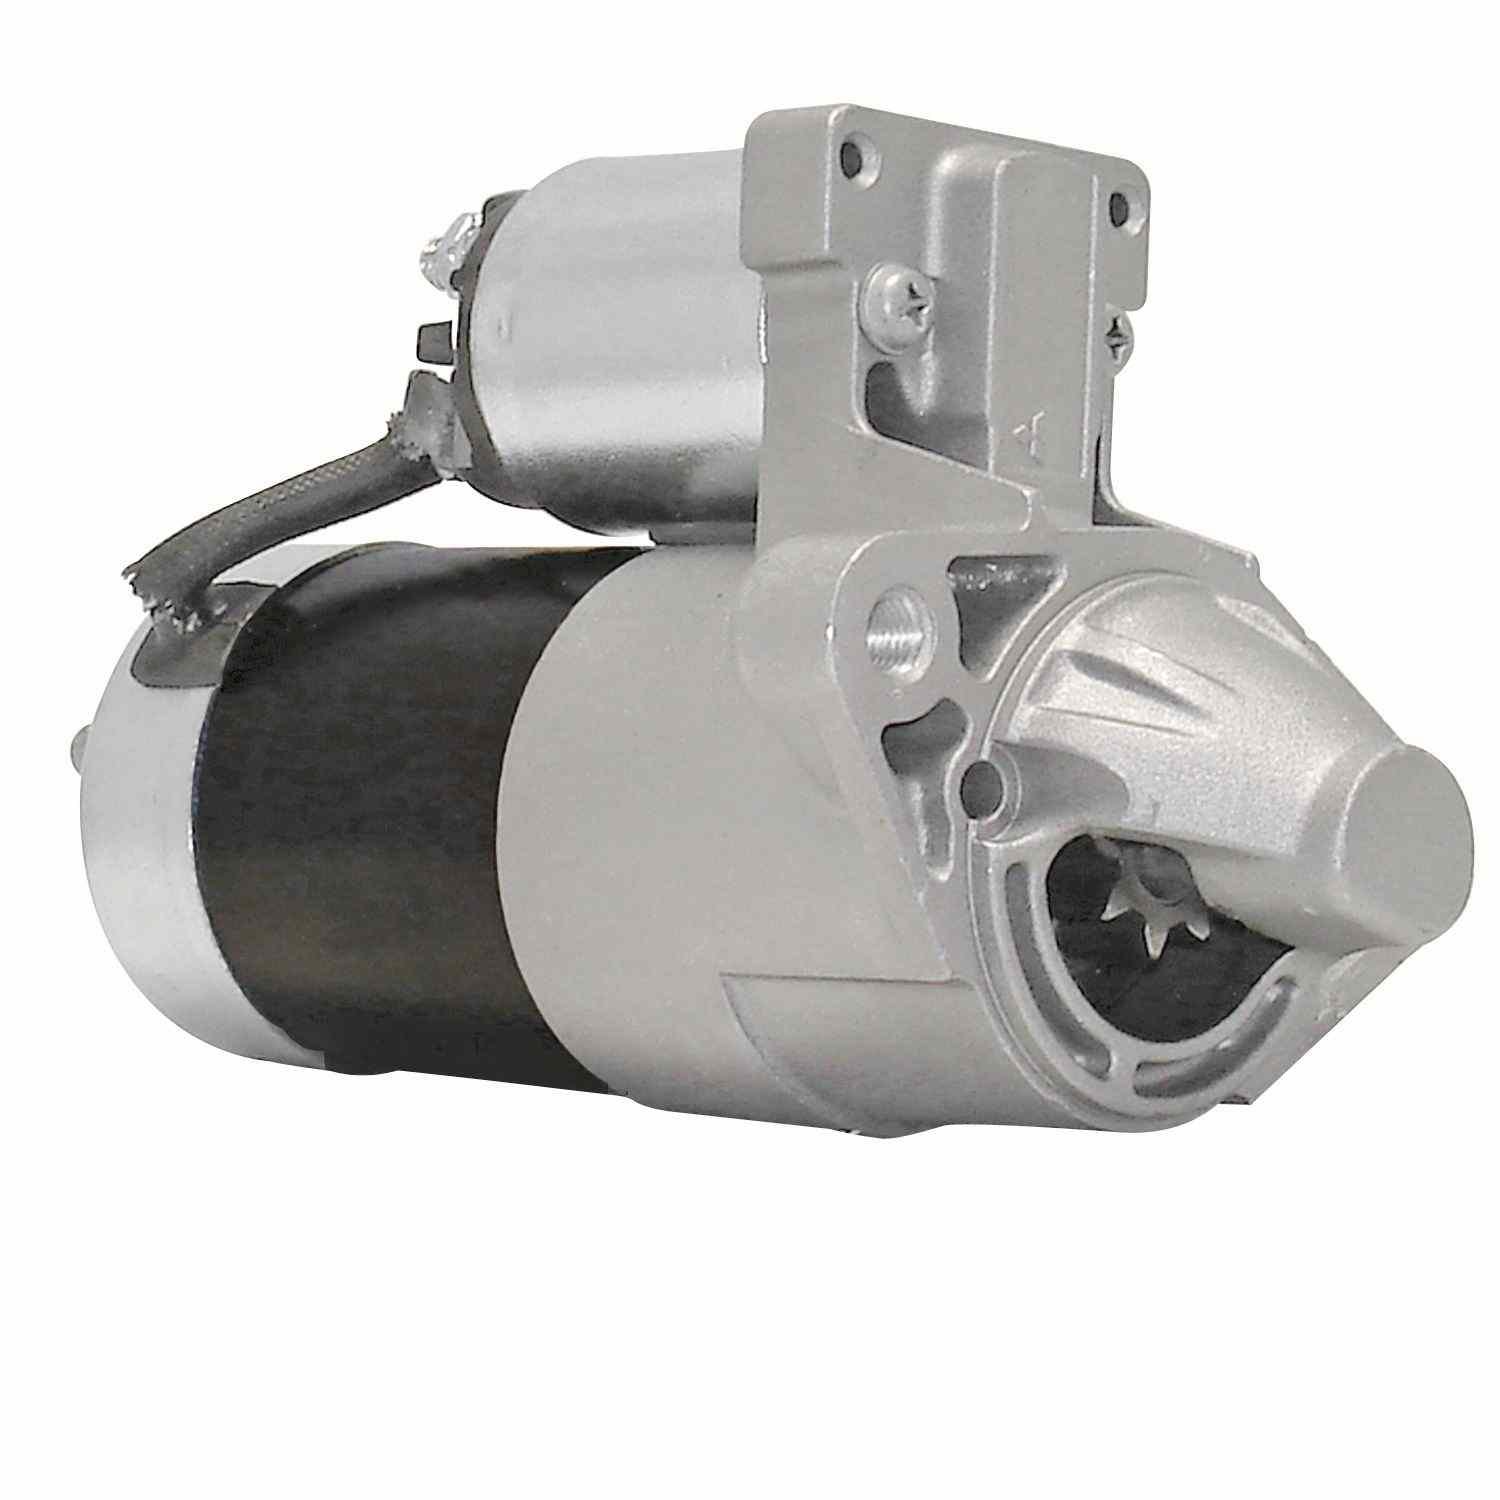 ACDELCO GOLD/PROFESSIONAL - Reman Starter Motor - DCC 336-1764